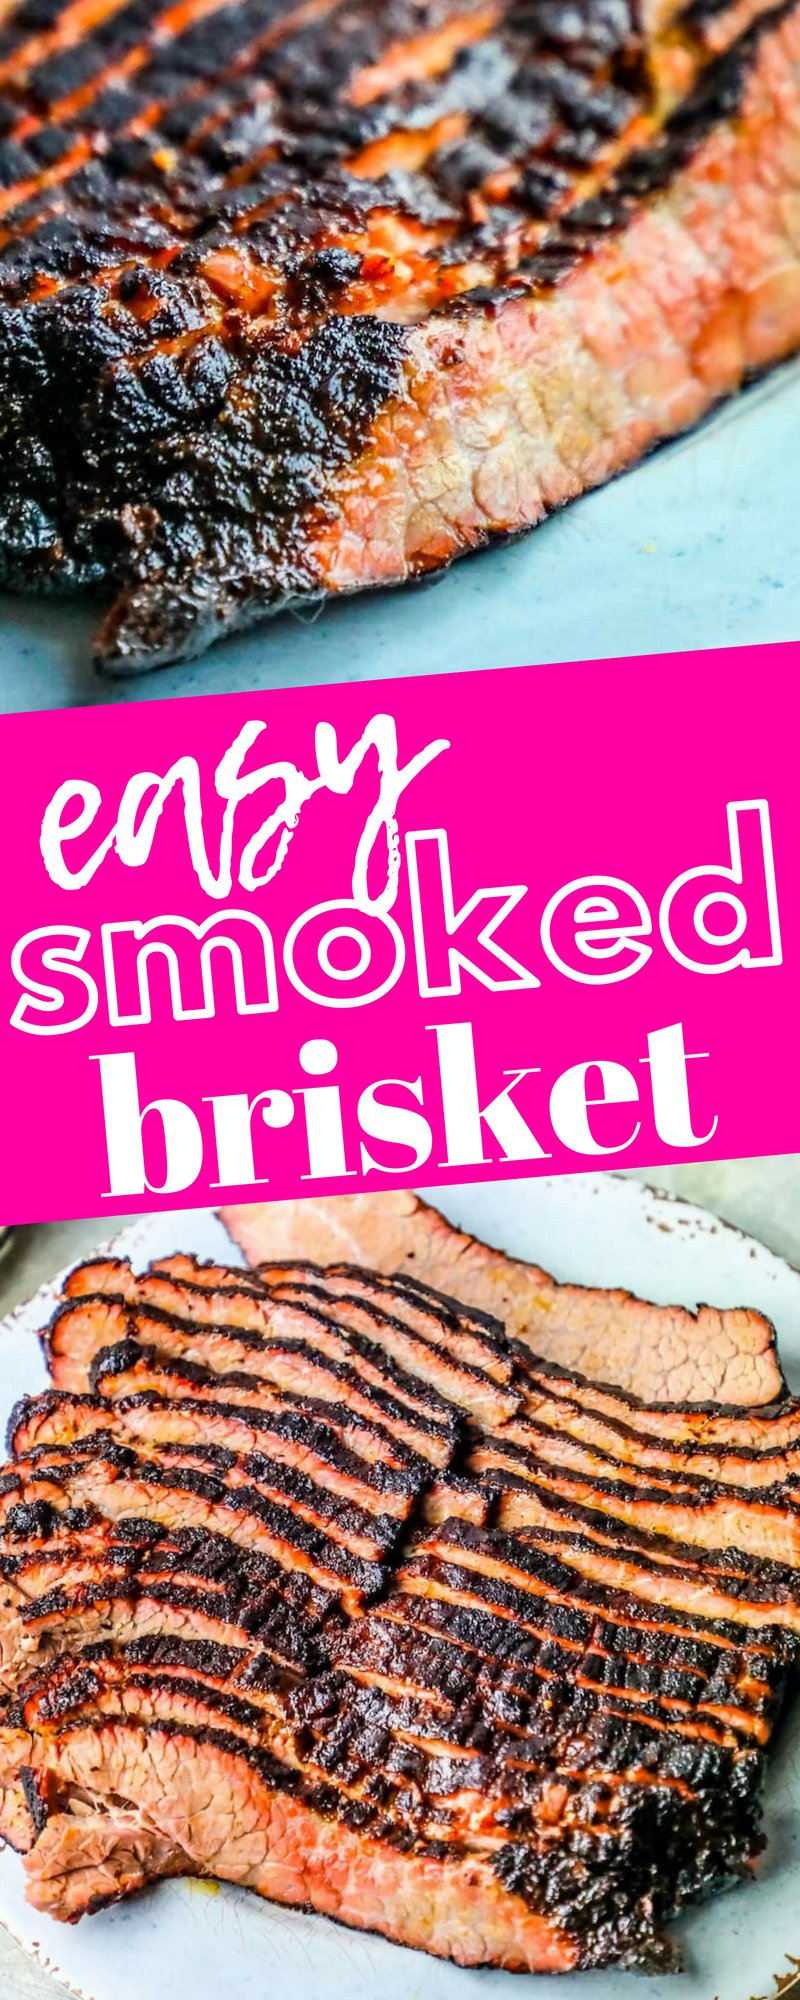 picture of smoked brisket sliced on a plate